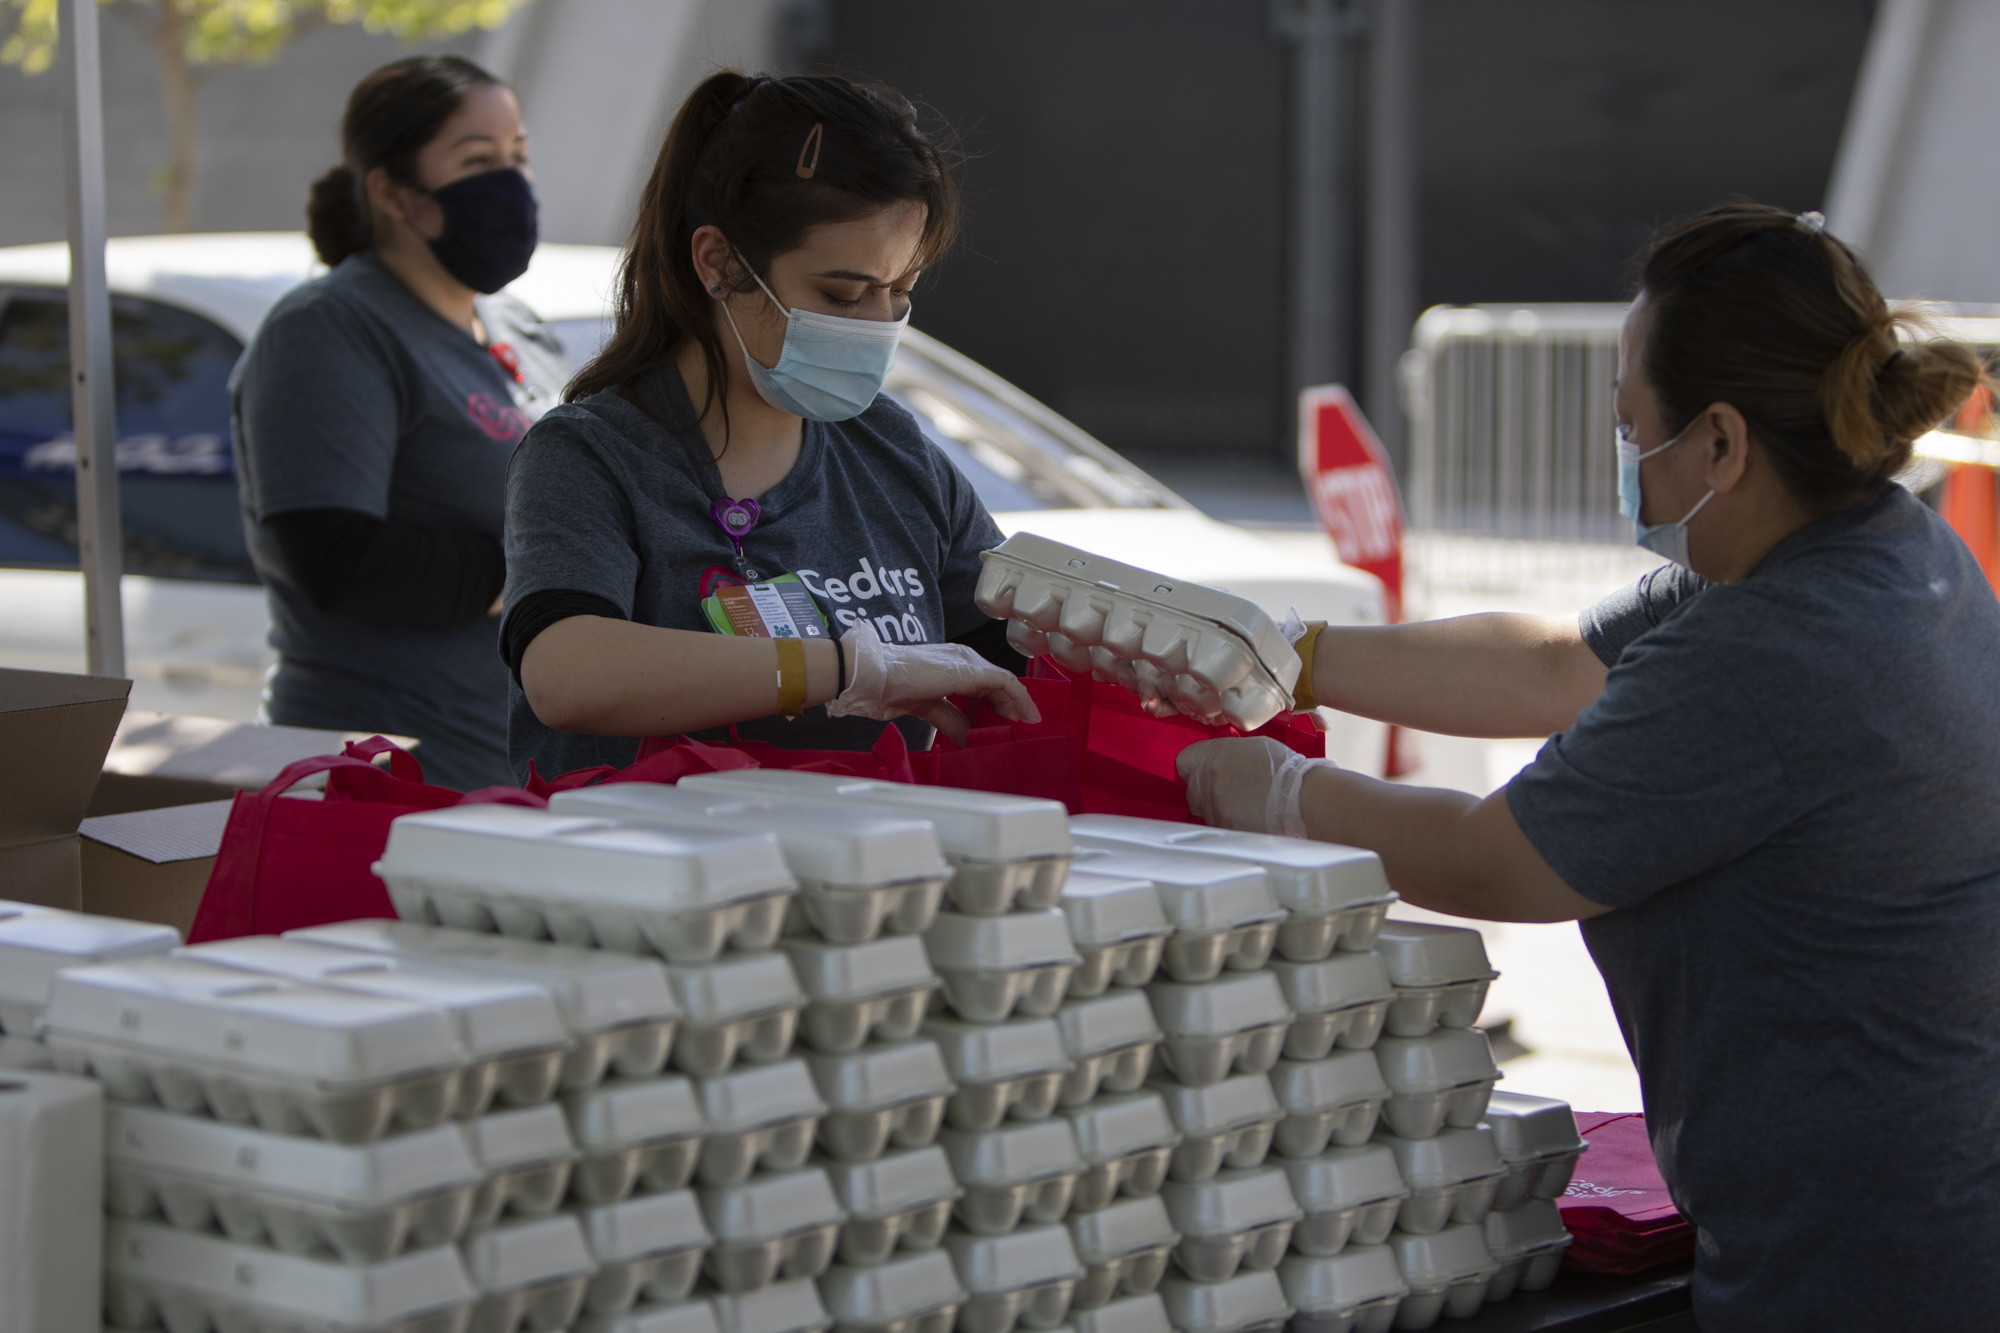 Representatives from Cedars-Sinai prepare bags with a dozen eggs. Each family also receives a week's worth of seasonal fruits and vegetables, 10 pounds of oranges, and information about local public nutrition benefit and incentive programs.